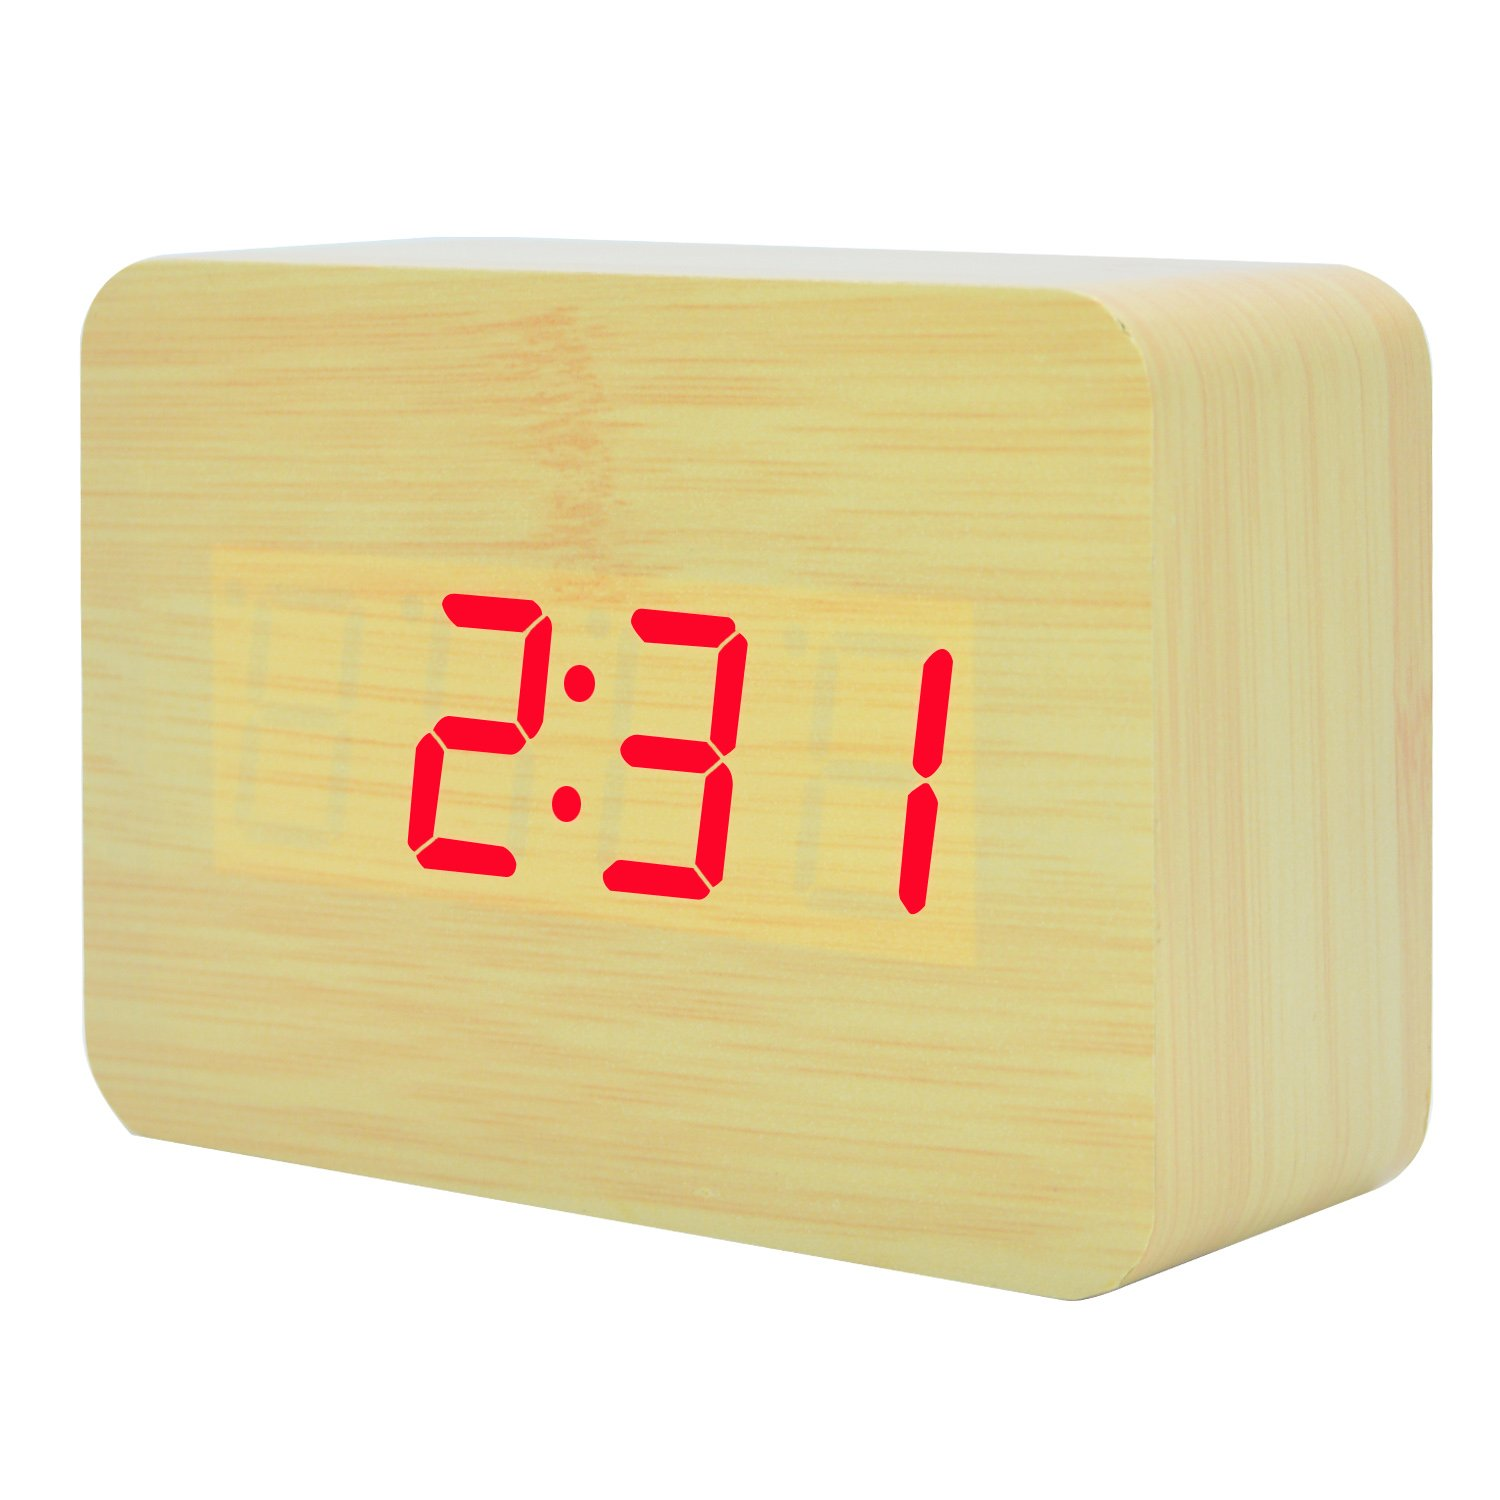 Electronic Wooden Alarm Clock LED Digital Time Temperature Date Alternate Display Desktop Home Bedroom Travel Clocks with Sound Control Function (Bamboo Red Light) GANGHENGYU